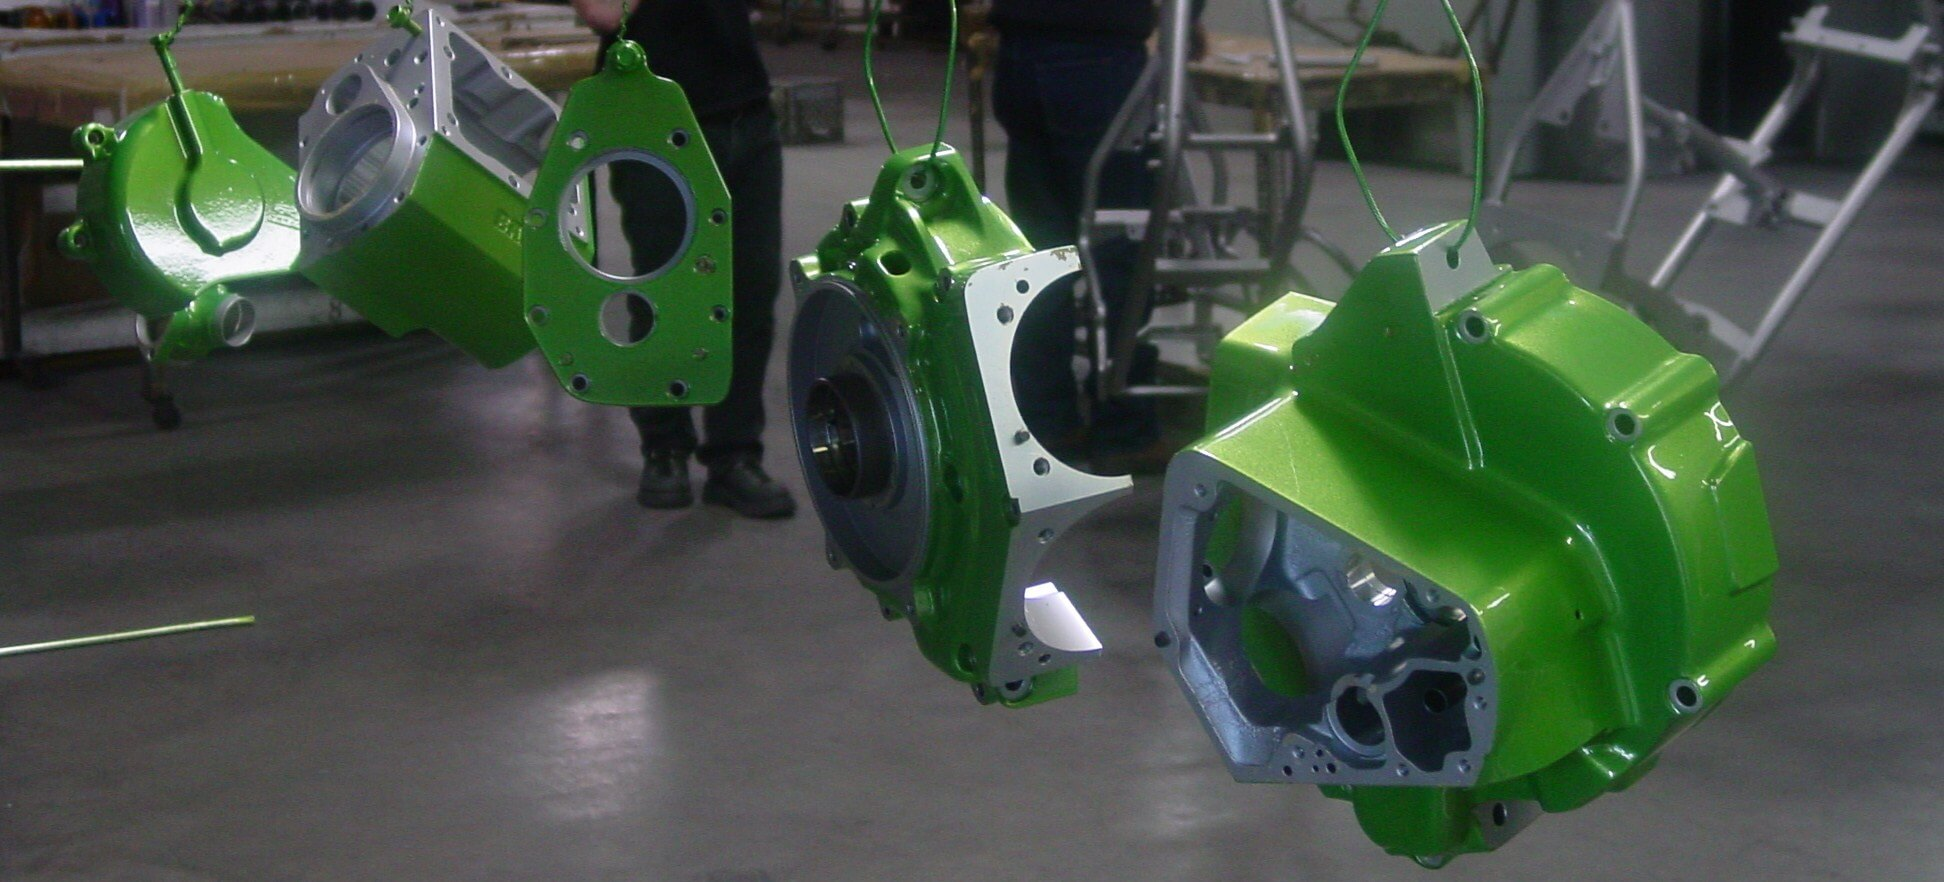 Powdercoating Motor Cases